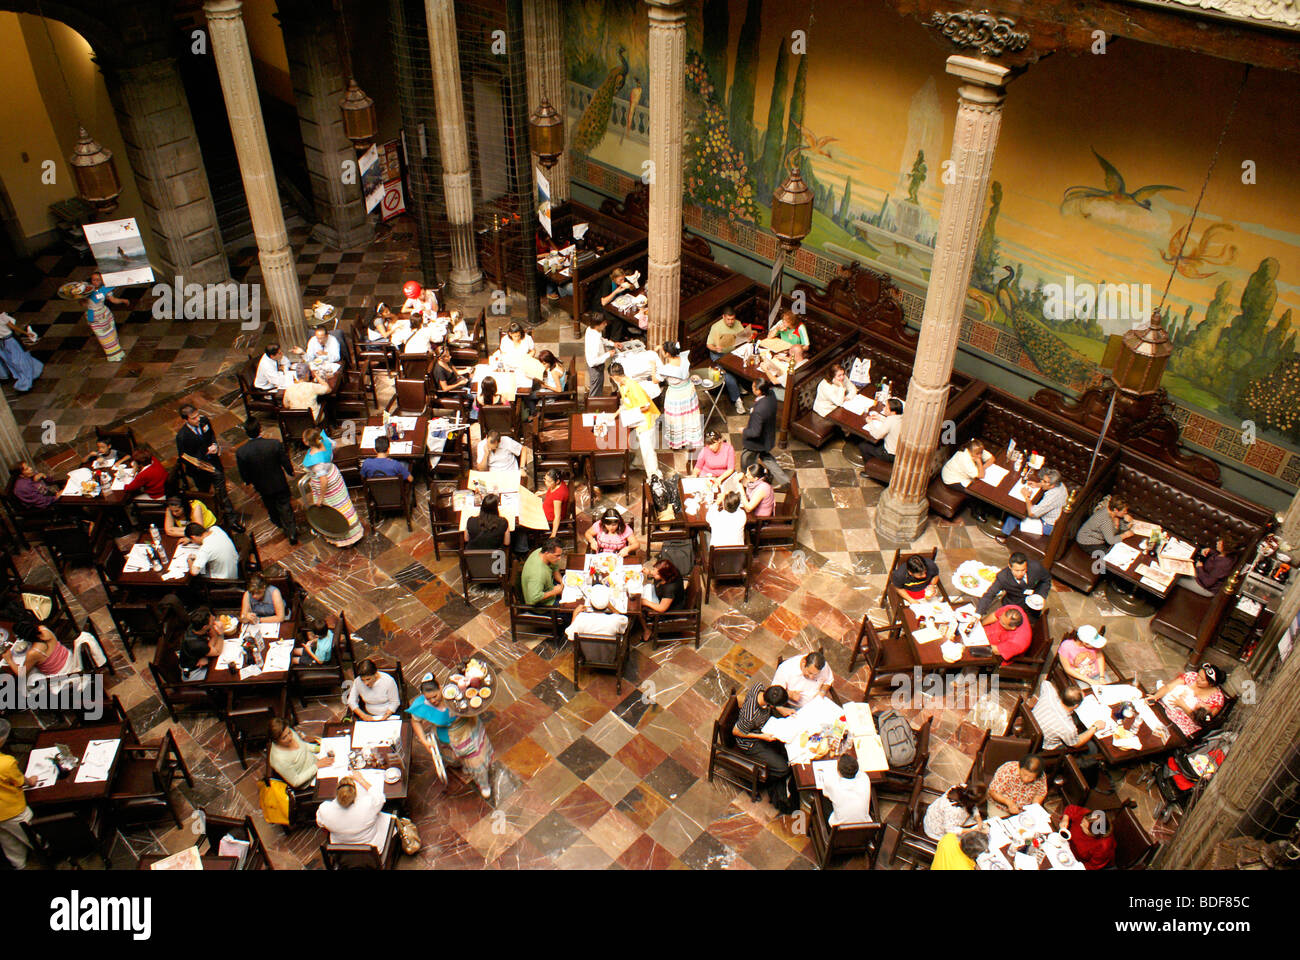 Interior architecture restaurant colonial stock photos for Sanborns azulejos restaurante